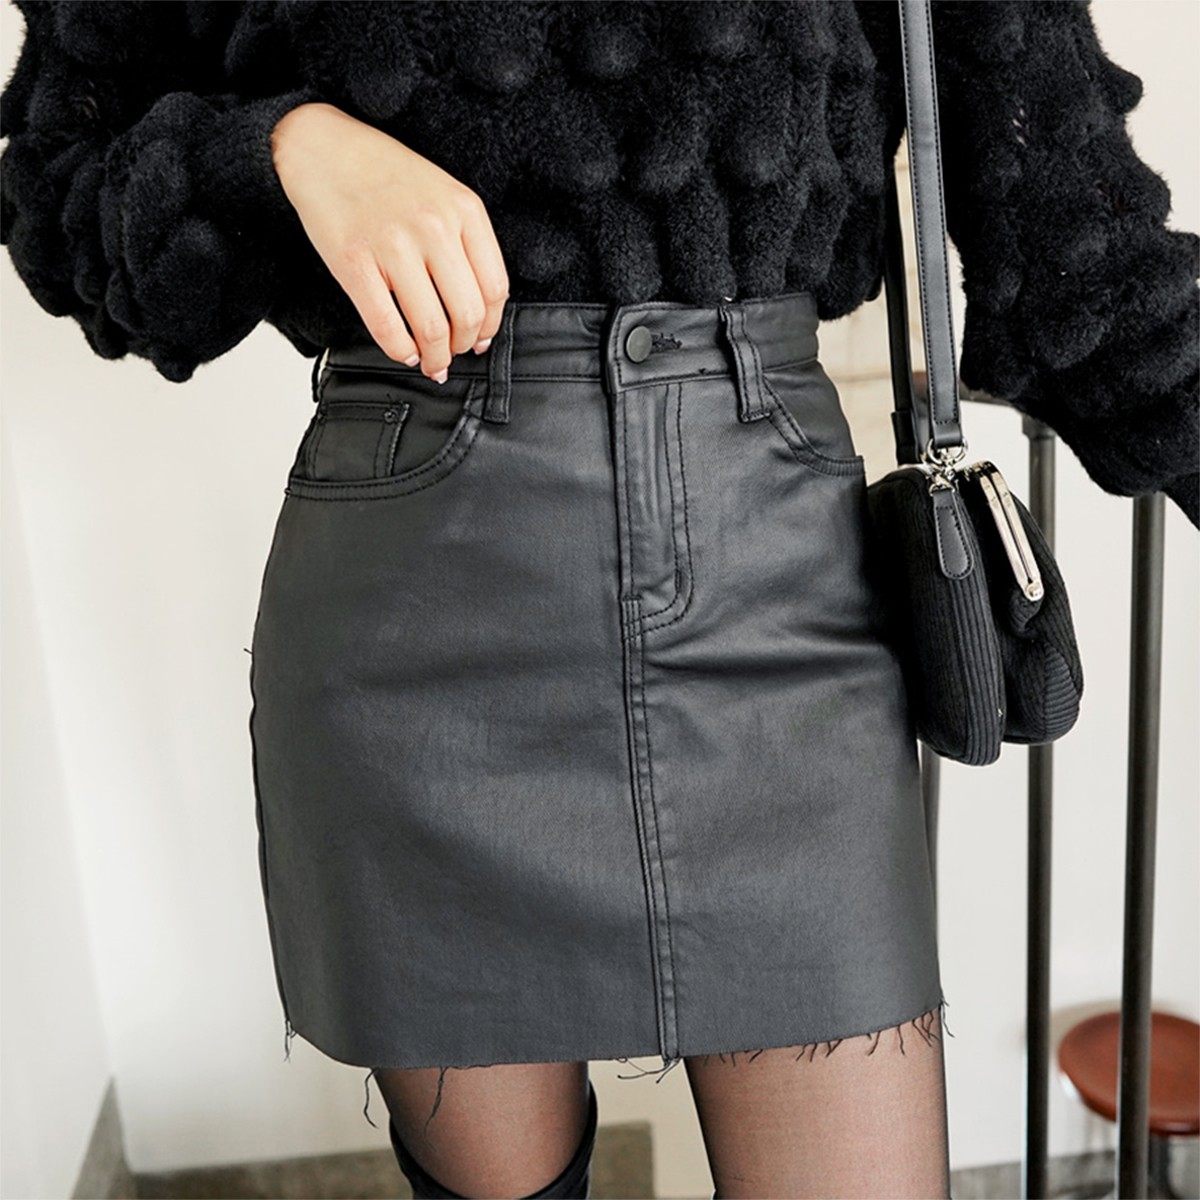 Yamibuy.com:Customer reviews:SSUMPARTY Coated Mini Skirt #Black M(27-28)